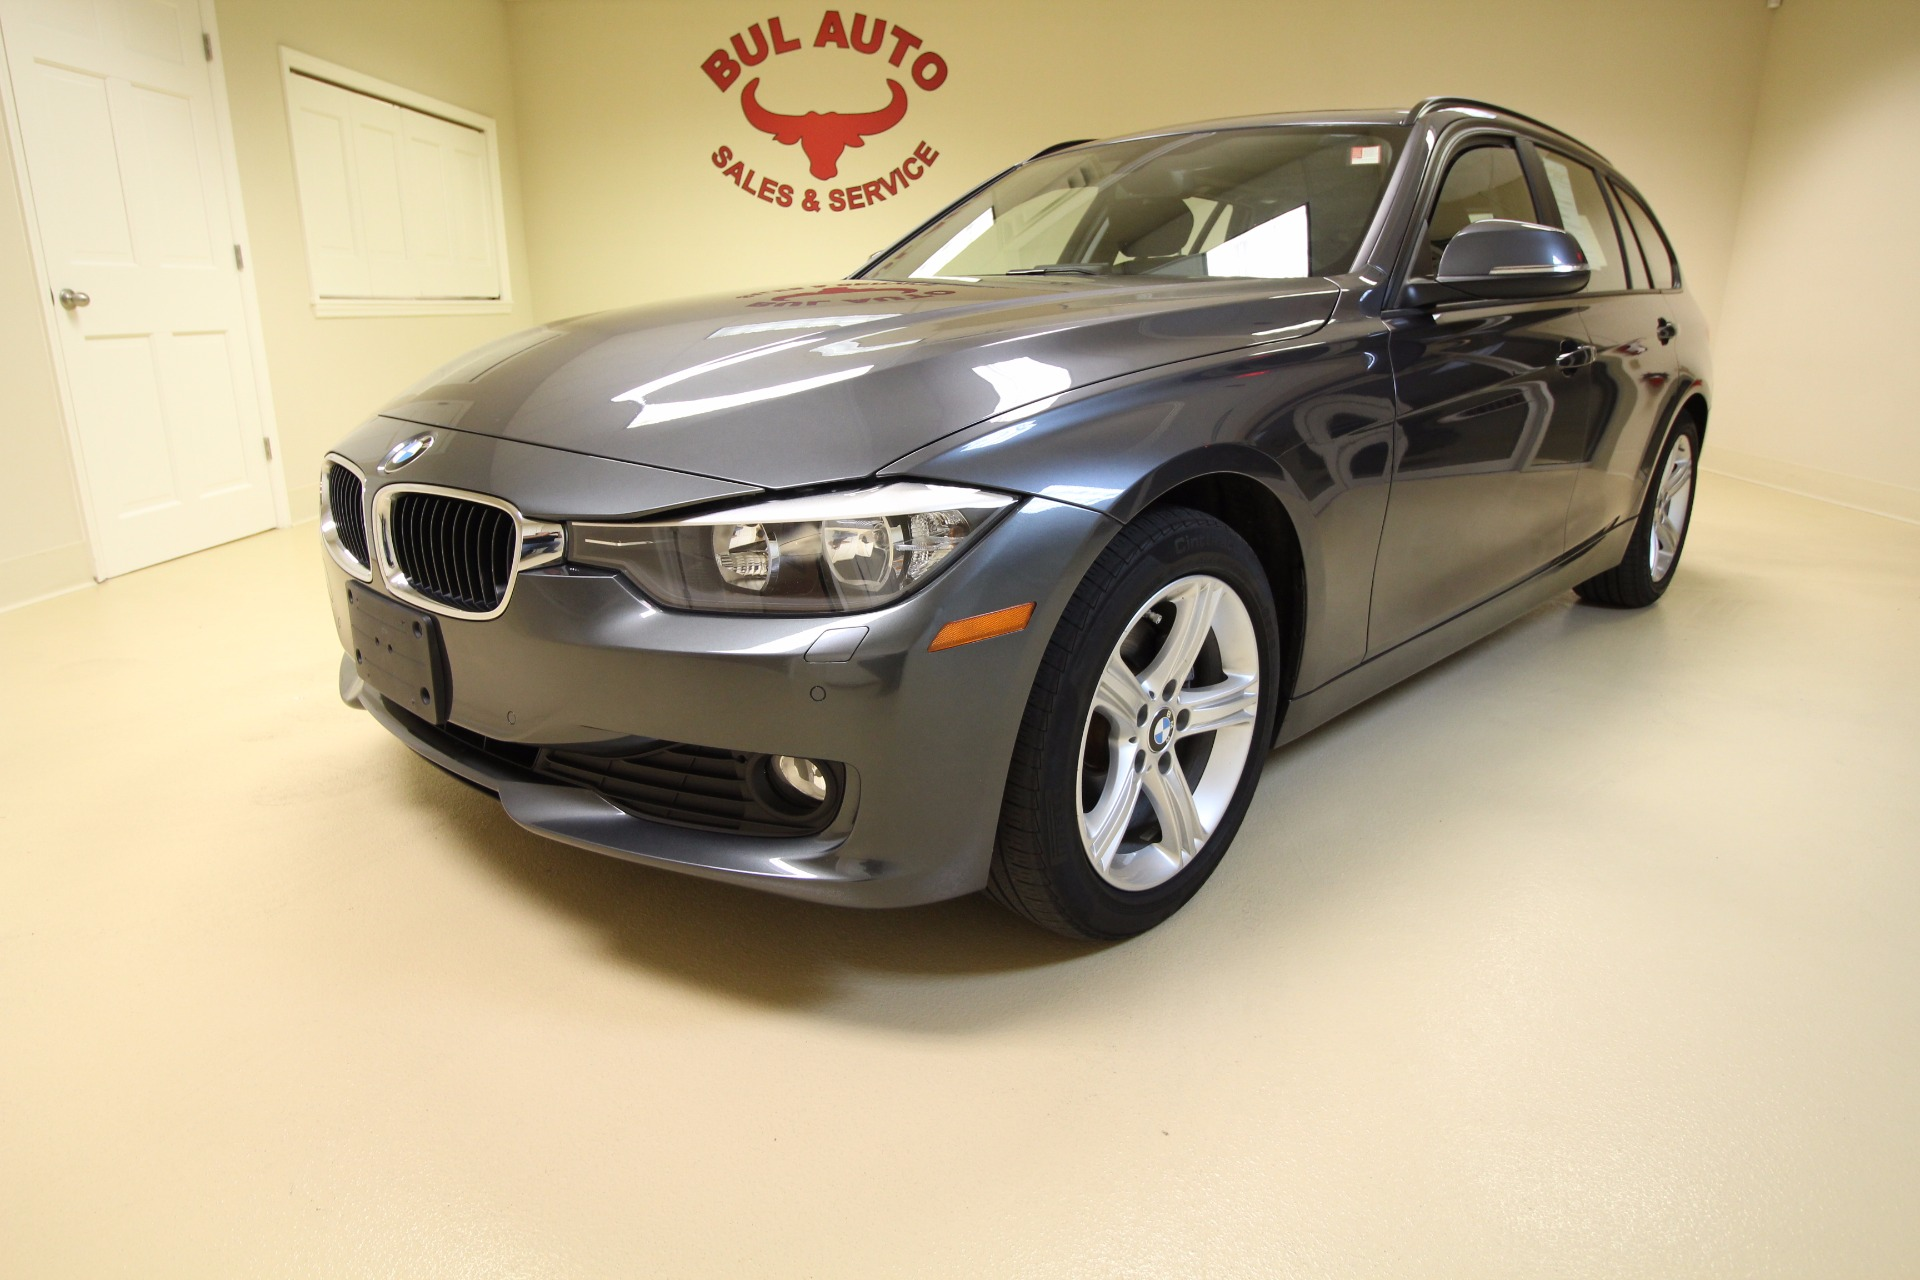 2014 bmw 3 series sport wagon 328d xdrive touring stock 17055 for sale near albany ny ny. Black Bedroom Furniture Sets. Home Design Ideas